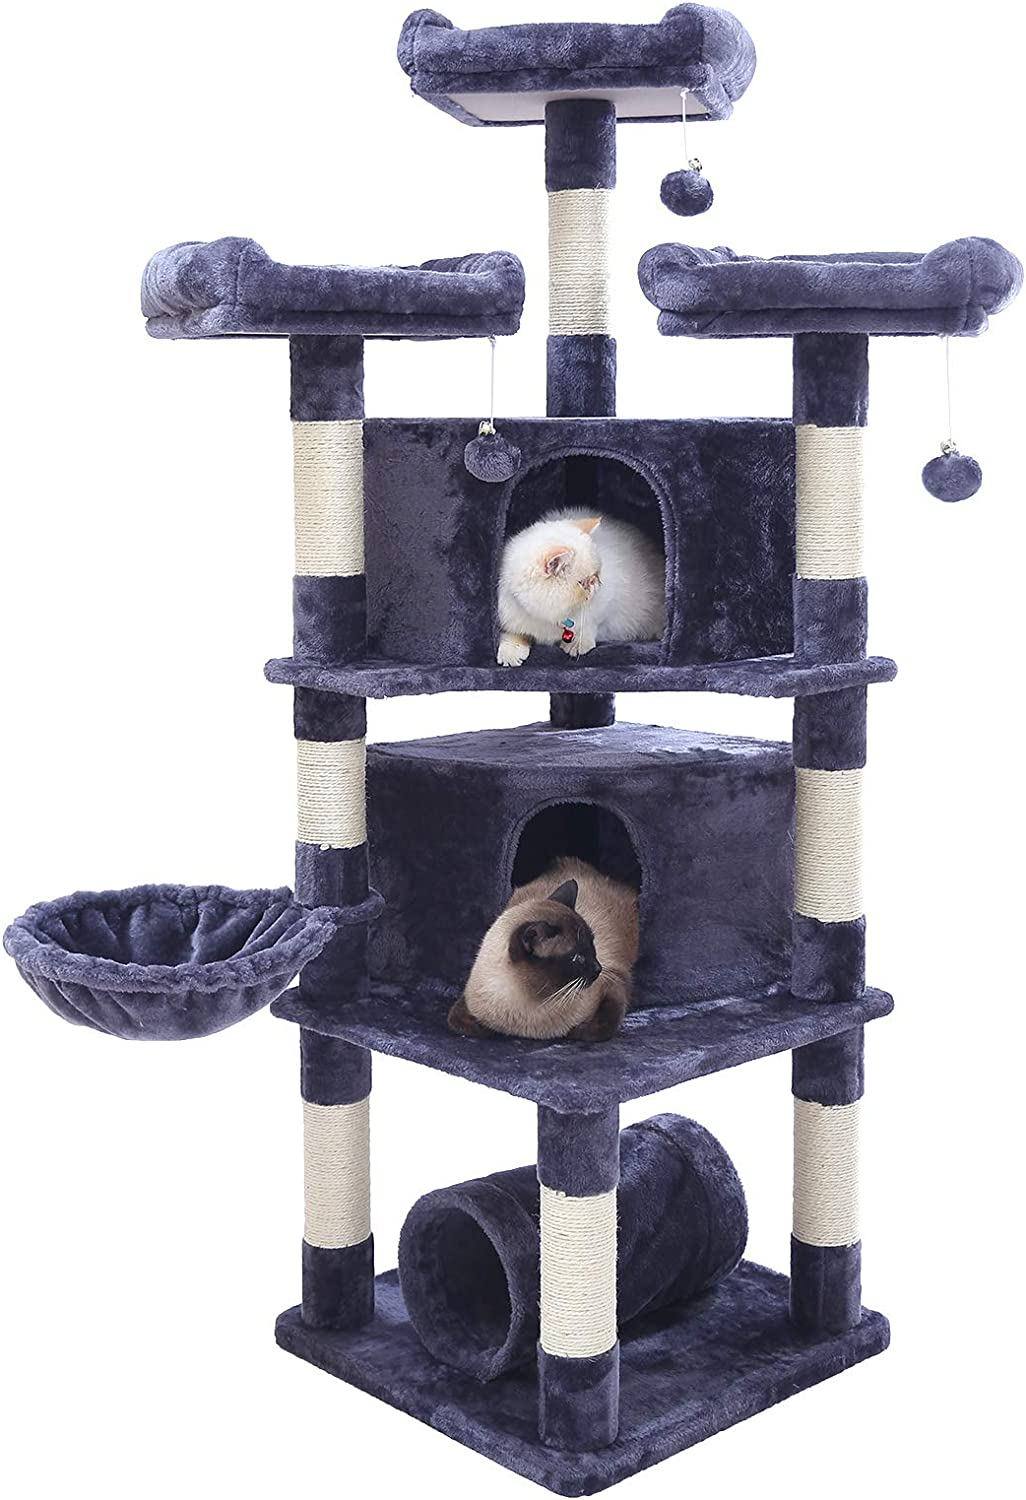 Hey-bro 65 inches Extra Large Multi-Level Cat Tree Condo Furniture with Sisal-Covered Scratching Posts, 2 Bigger Plush Condos, Perch Hammock for Kittens, Cats and Pets